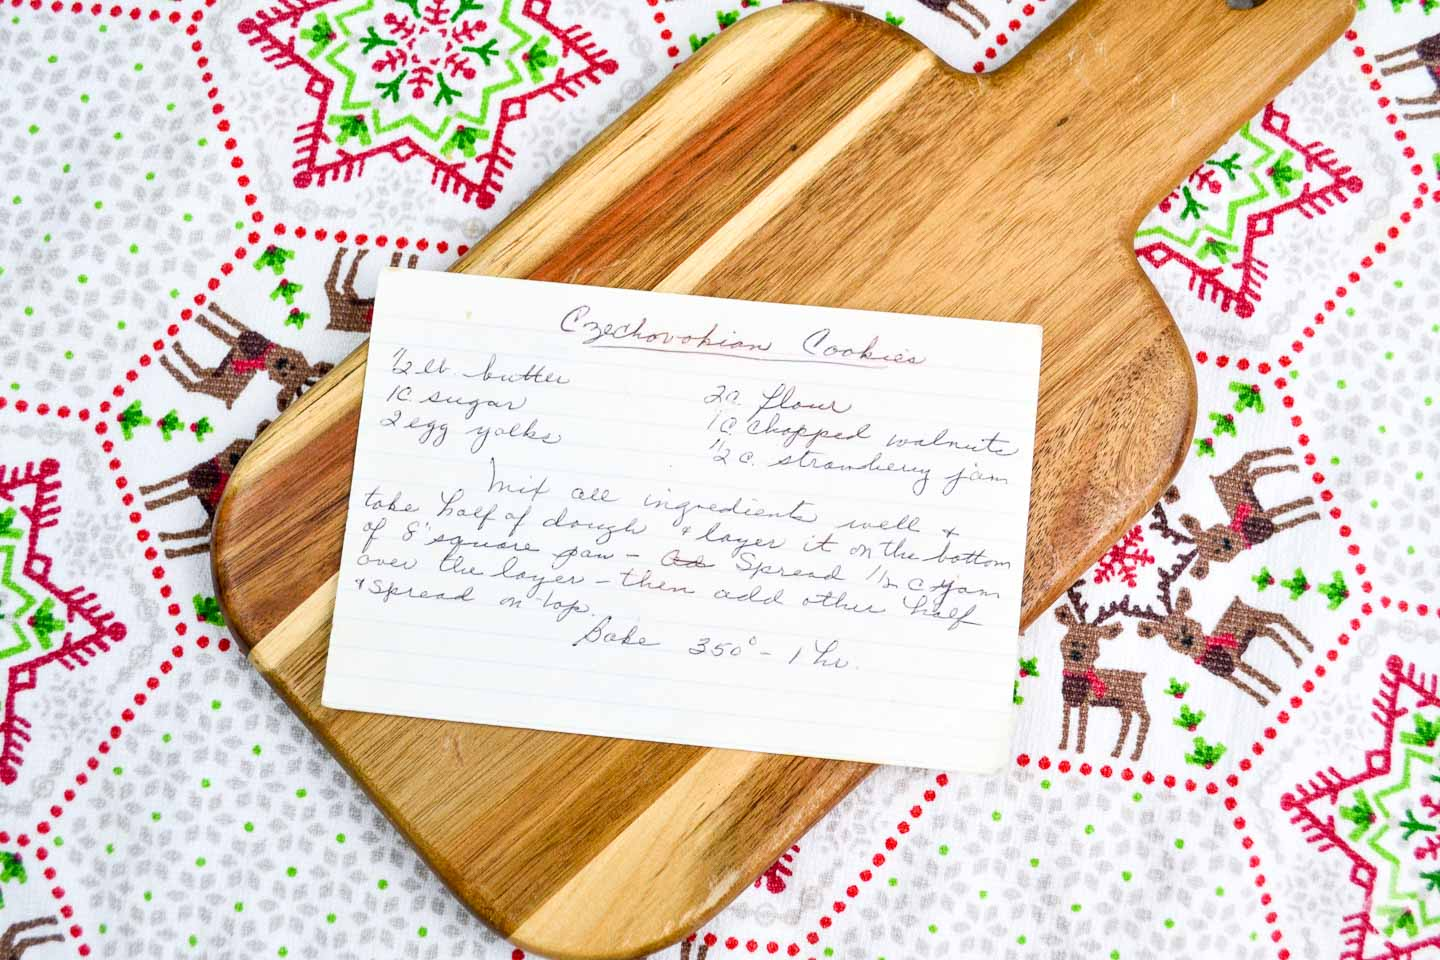 cookie recipe in my grandmother - granny's - handrwriting